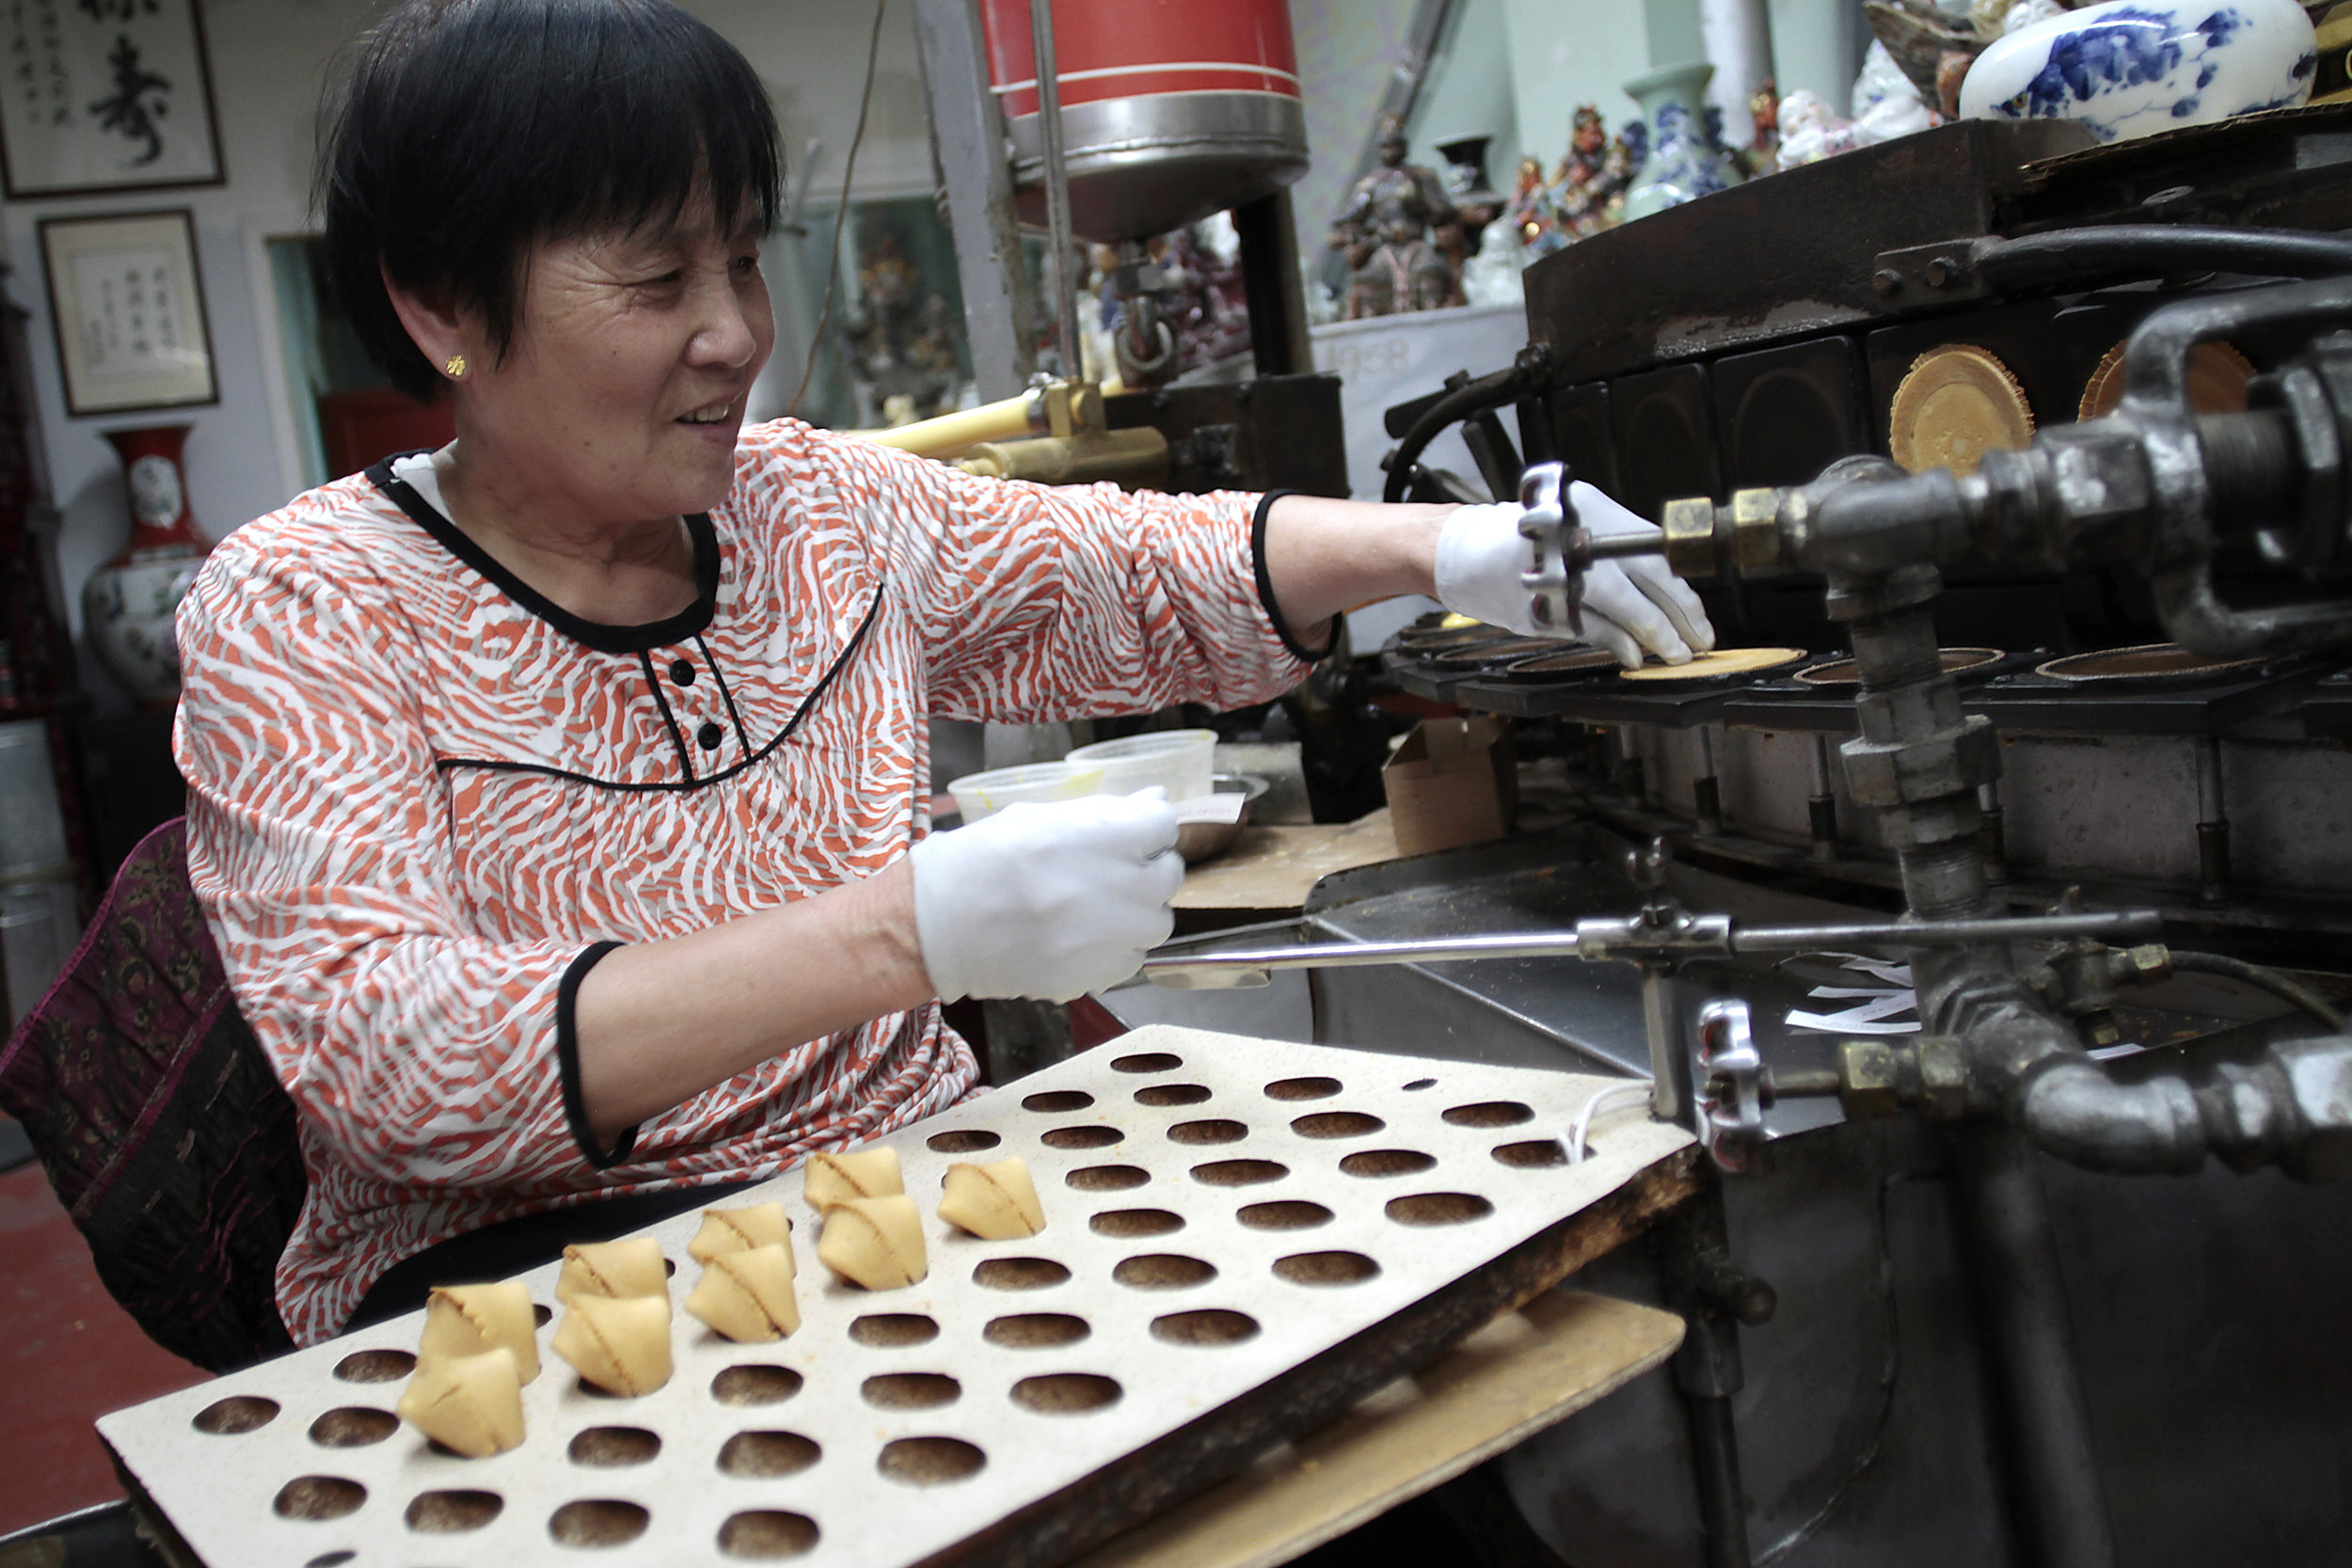 A woman folds fresh fortune cookies into shape around the tiny slips of paper at the famed Golden Gate Fortune Cookie Company in San Francisco, Sept. 2017.